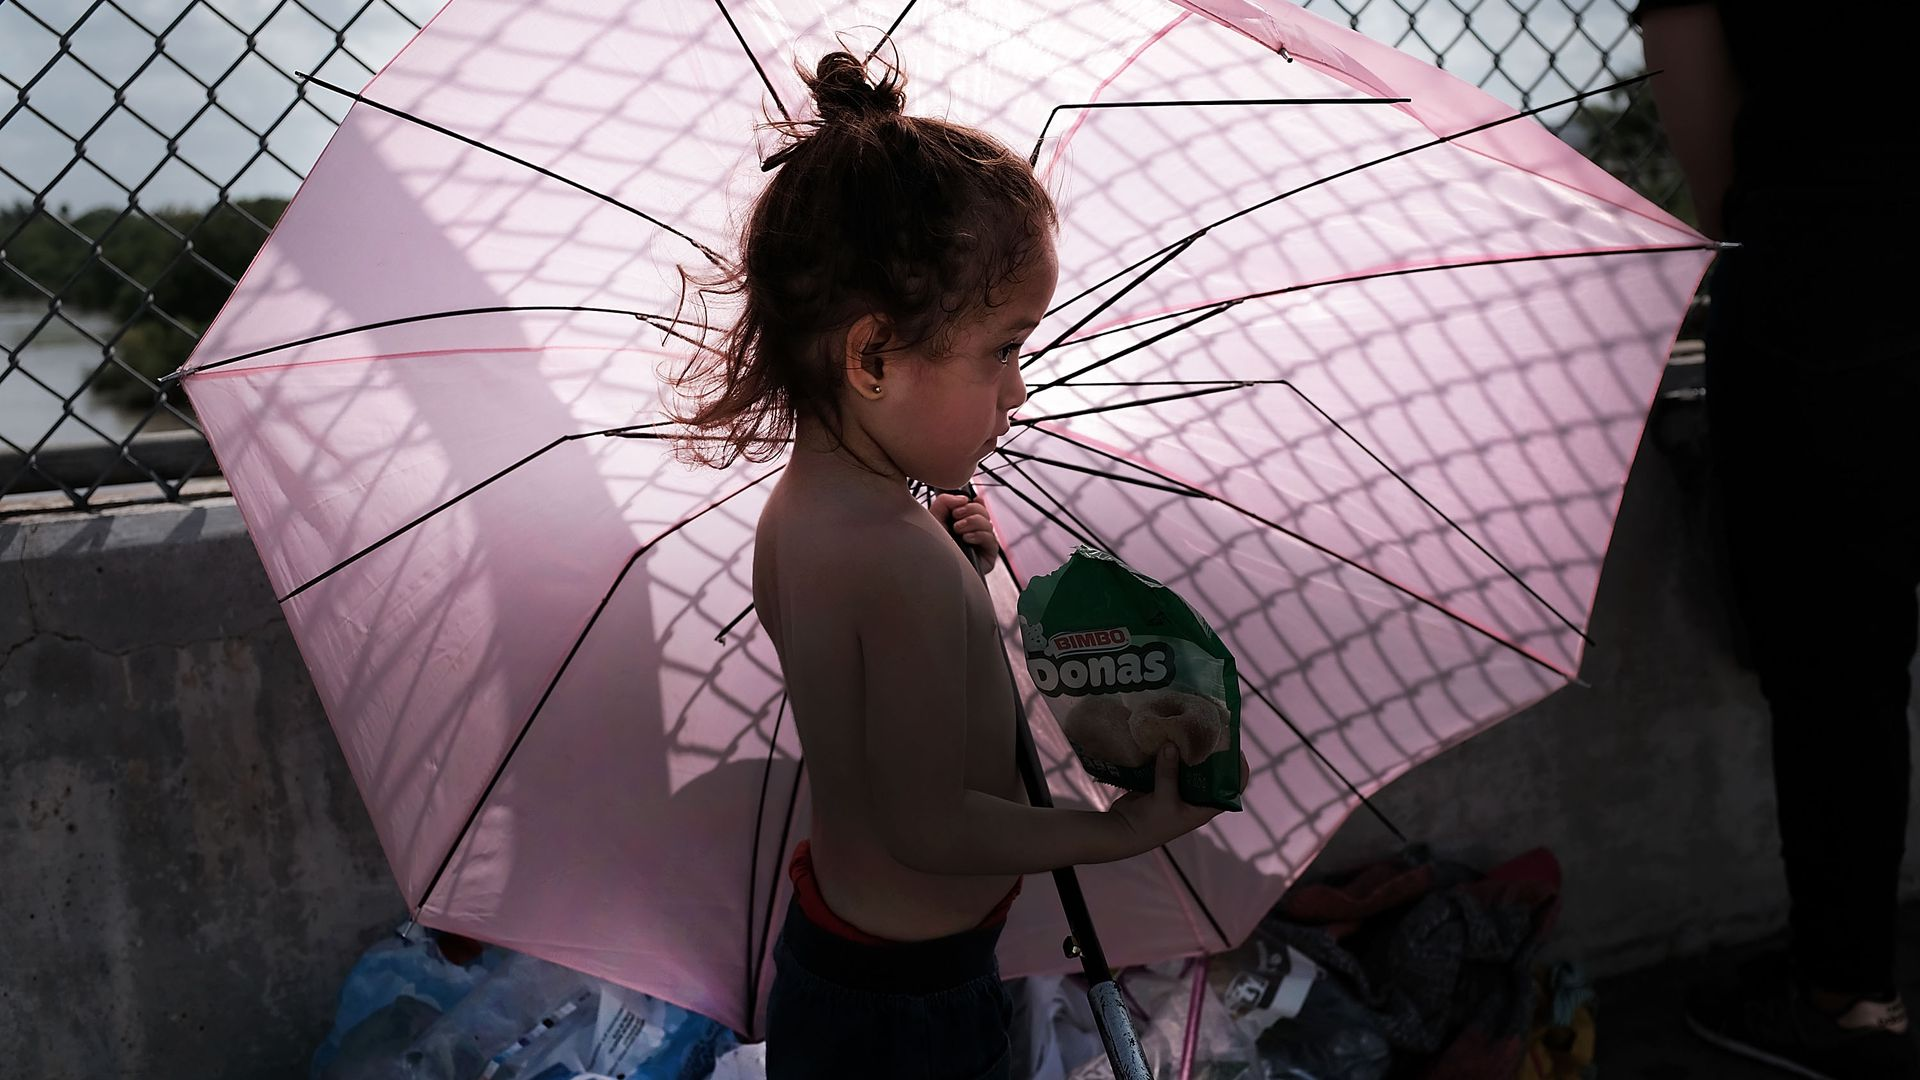 A child migrant holding a bag of chips and a big, pink umbrella